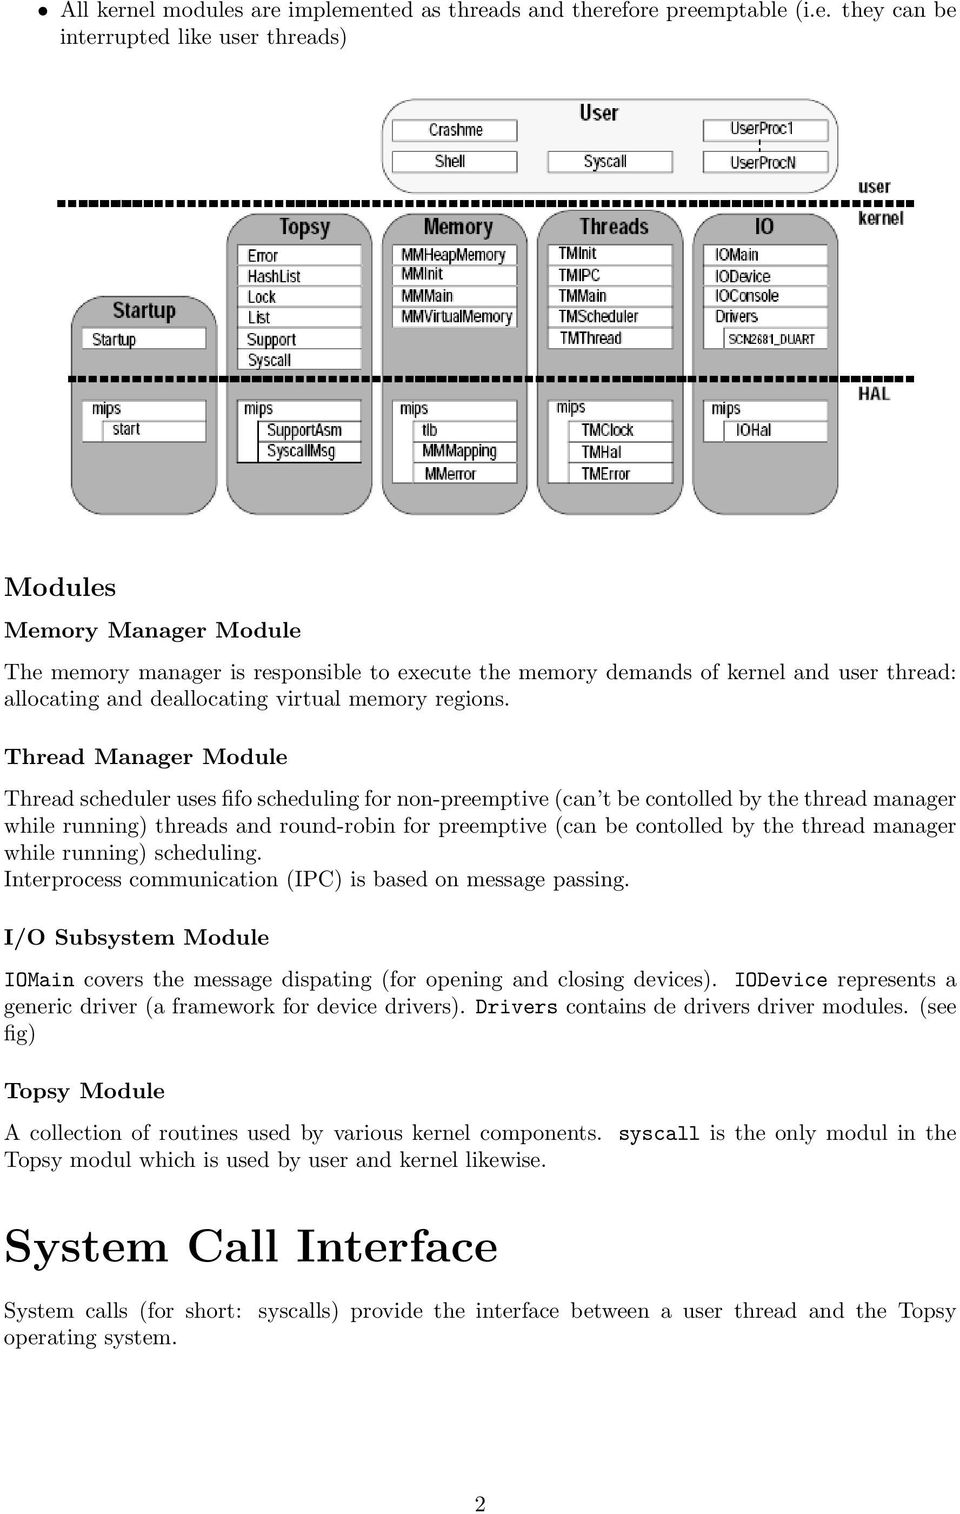 demands of kernel and user thread: allocating and deallocating virtual memory regions.